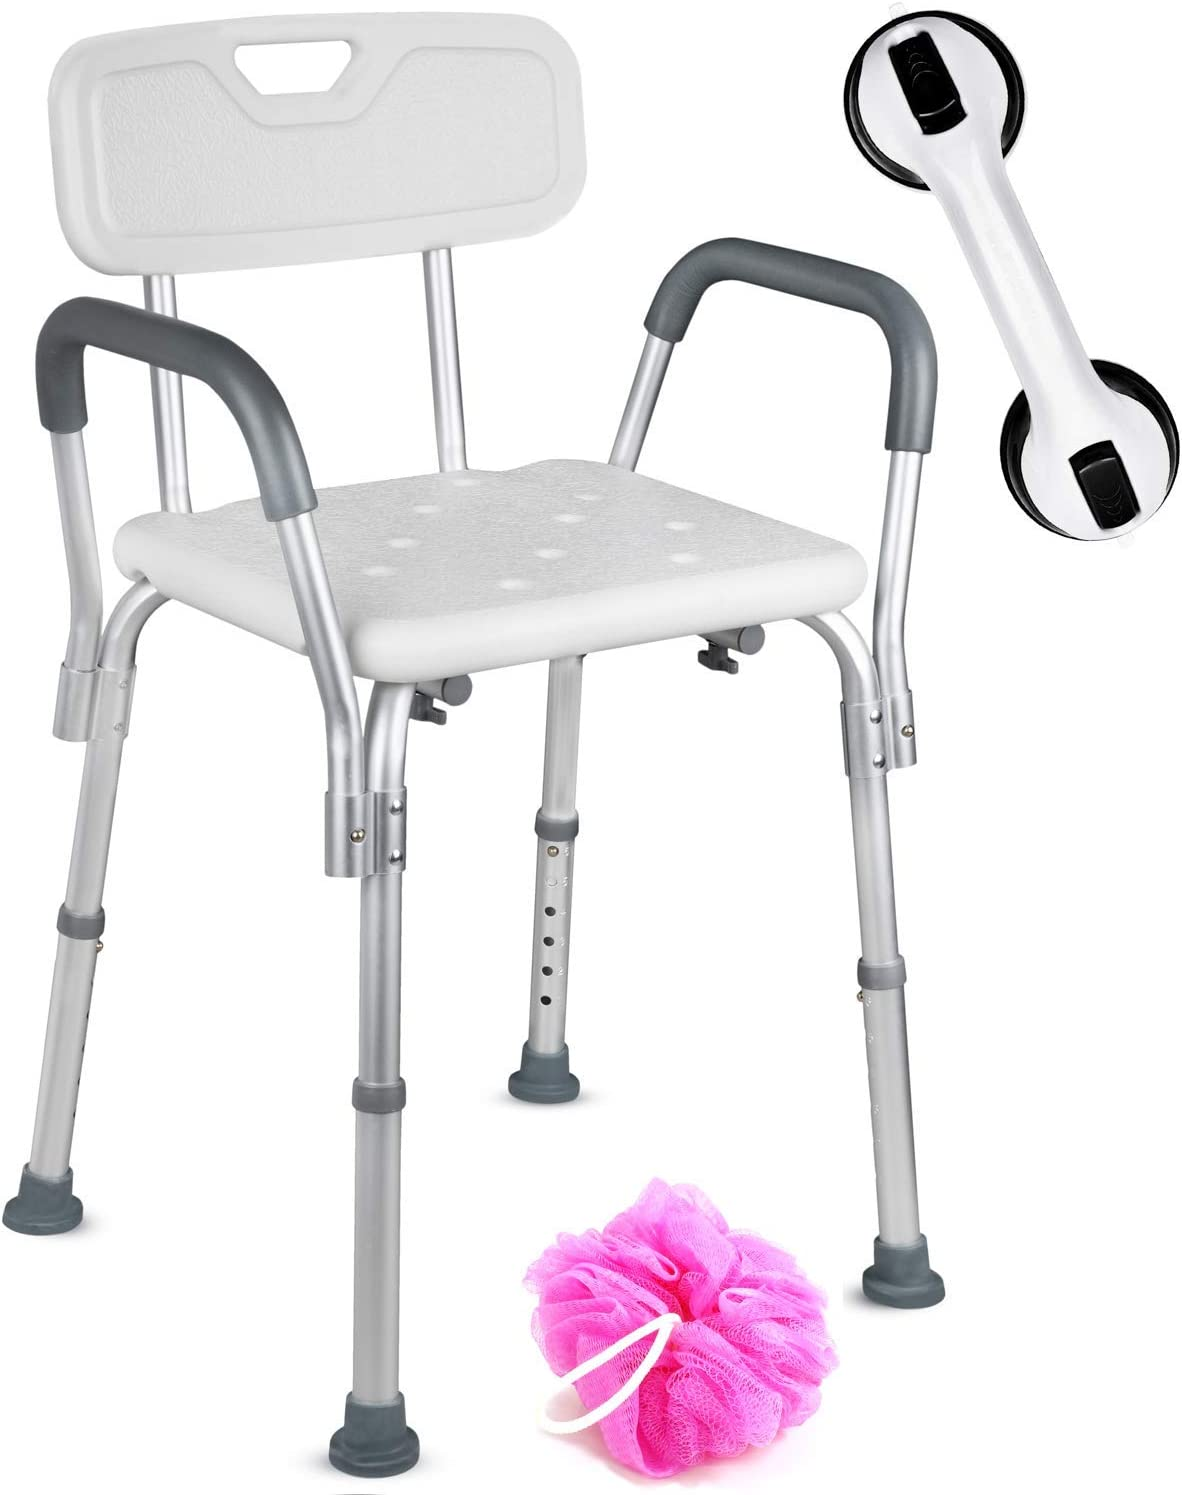 Dr. Maya Adjustable Shower Chair